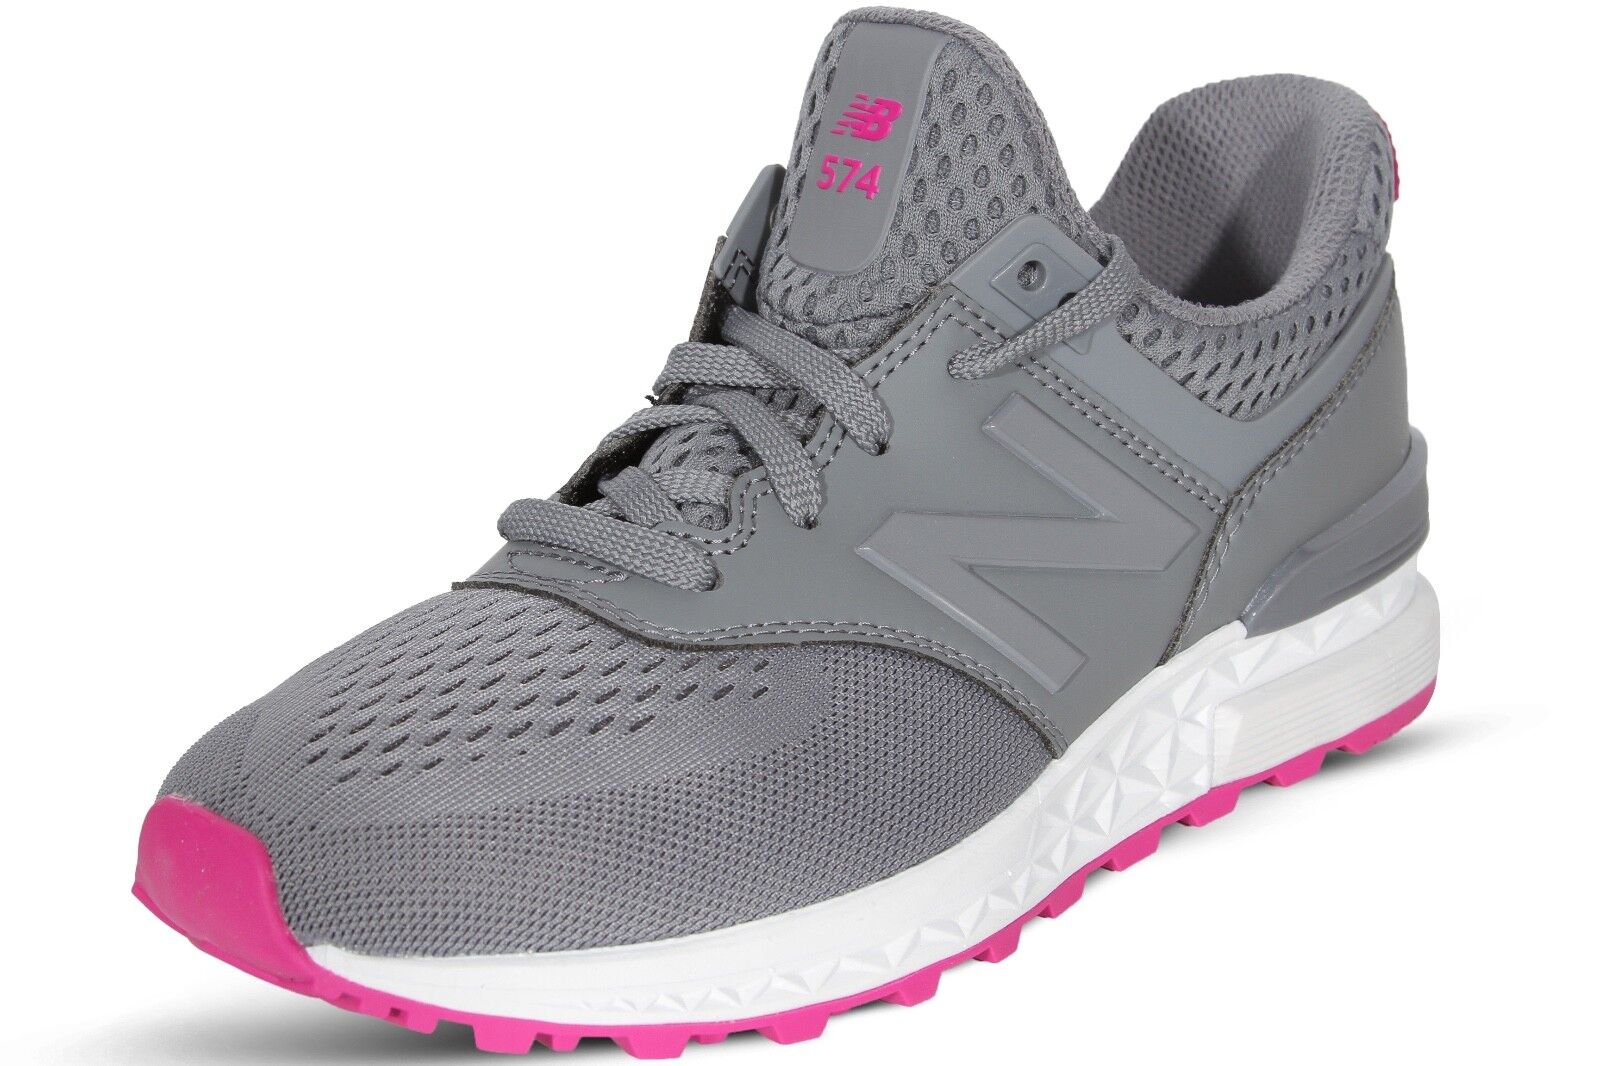 New Balance Women's Shoes Grey Pink 574 Sport Classic Running Sneakers WS574EMB